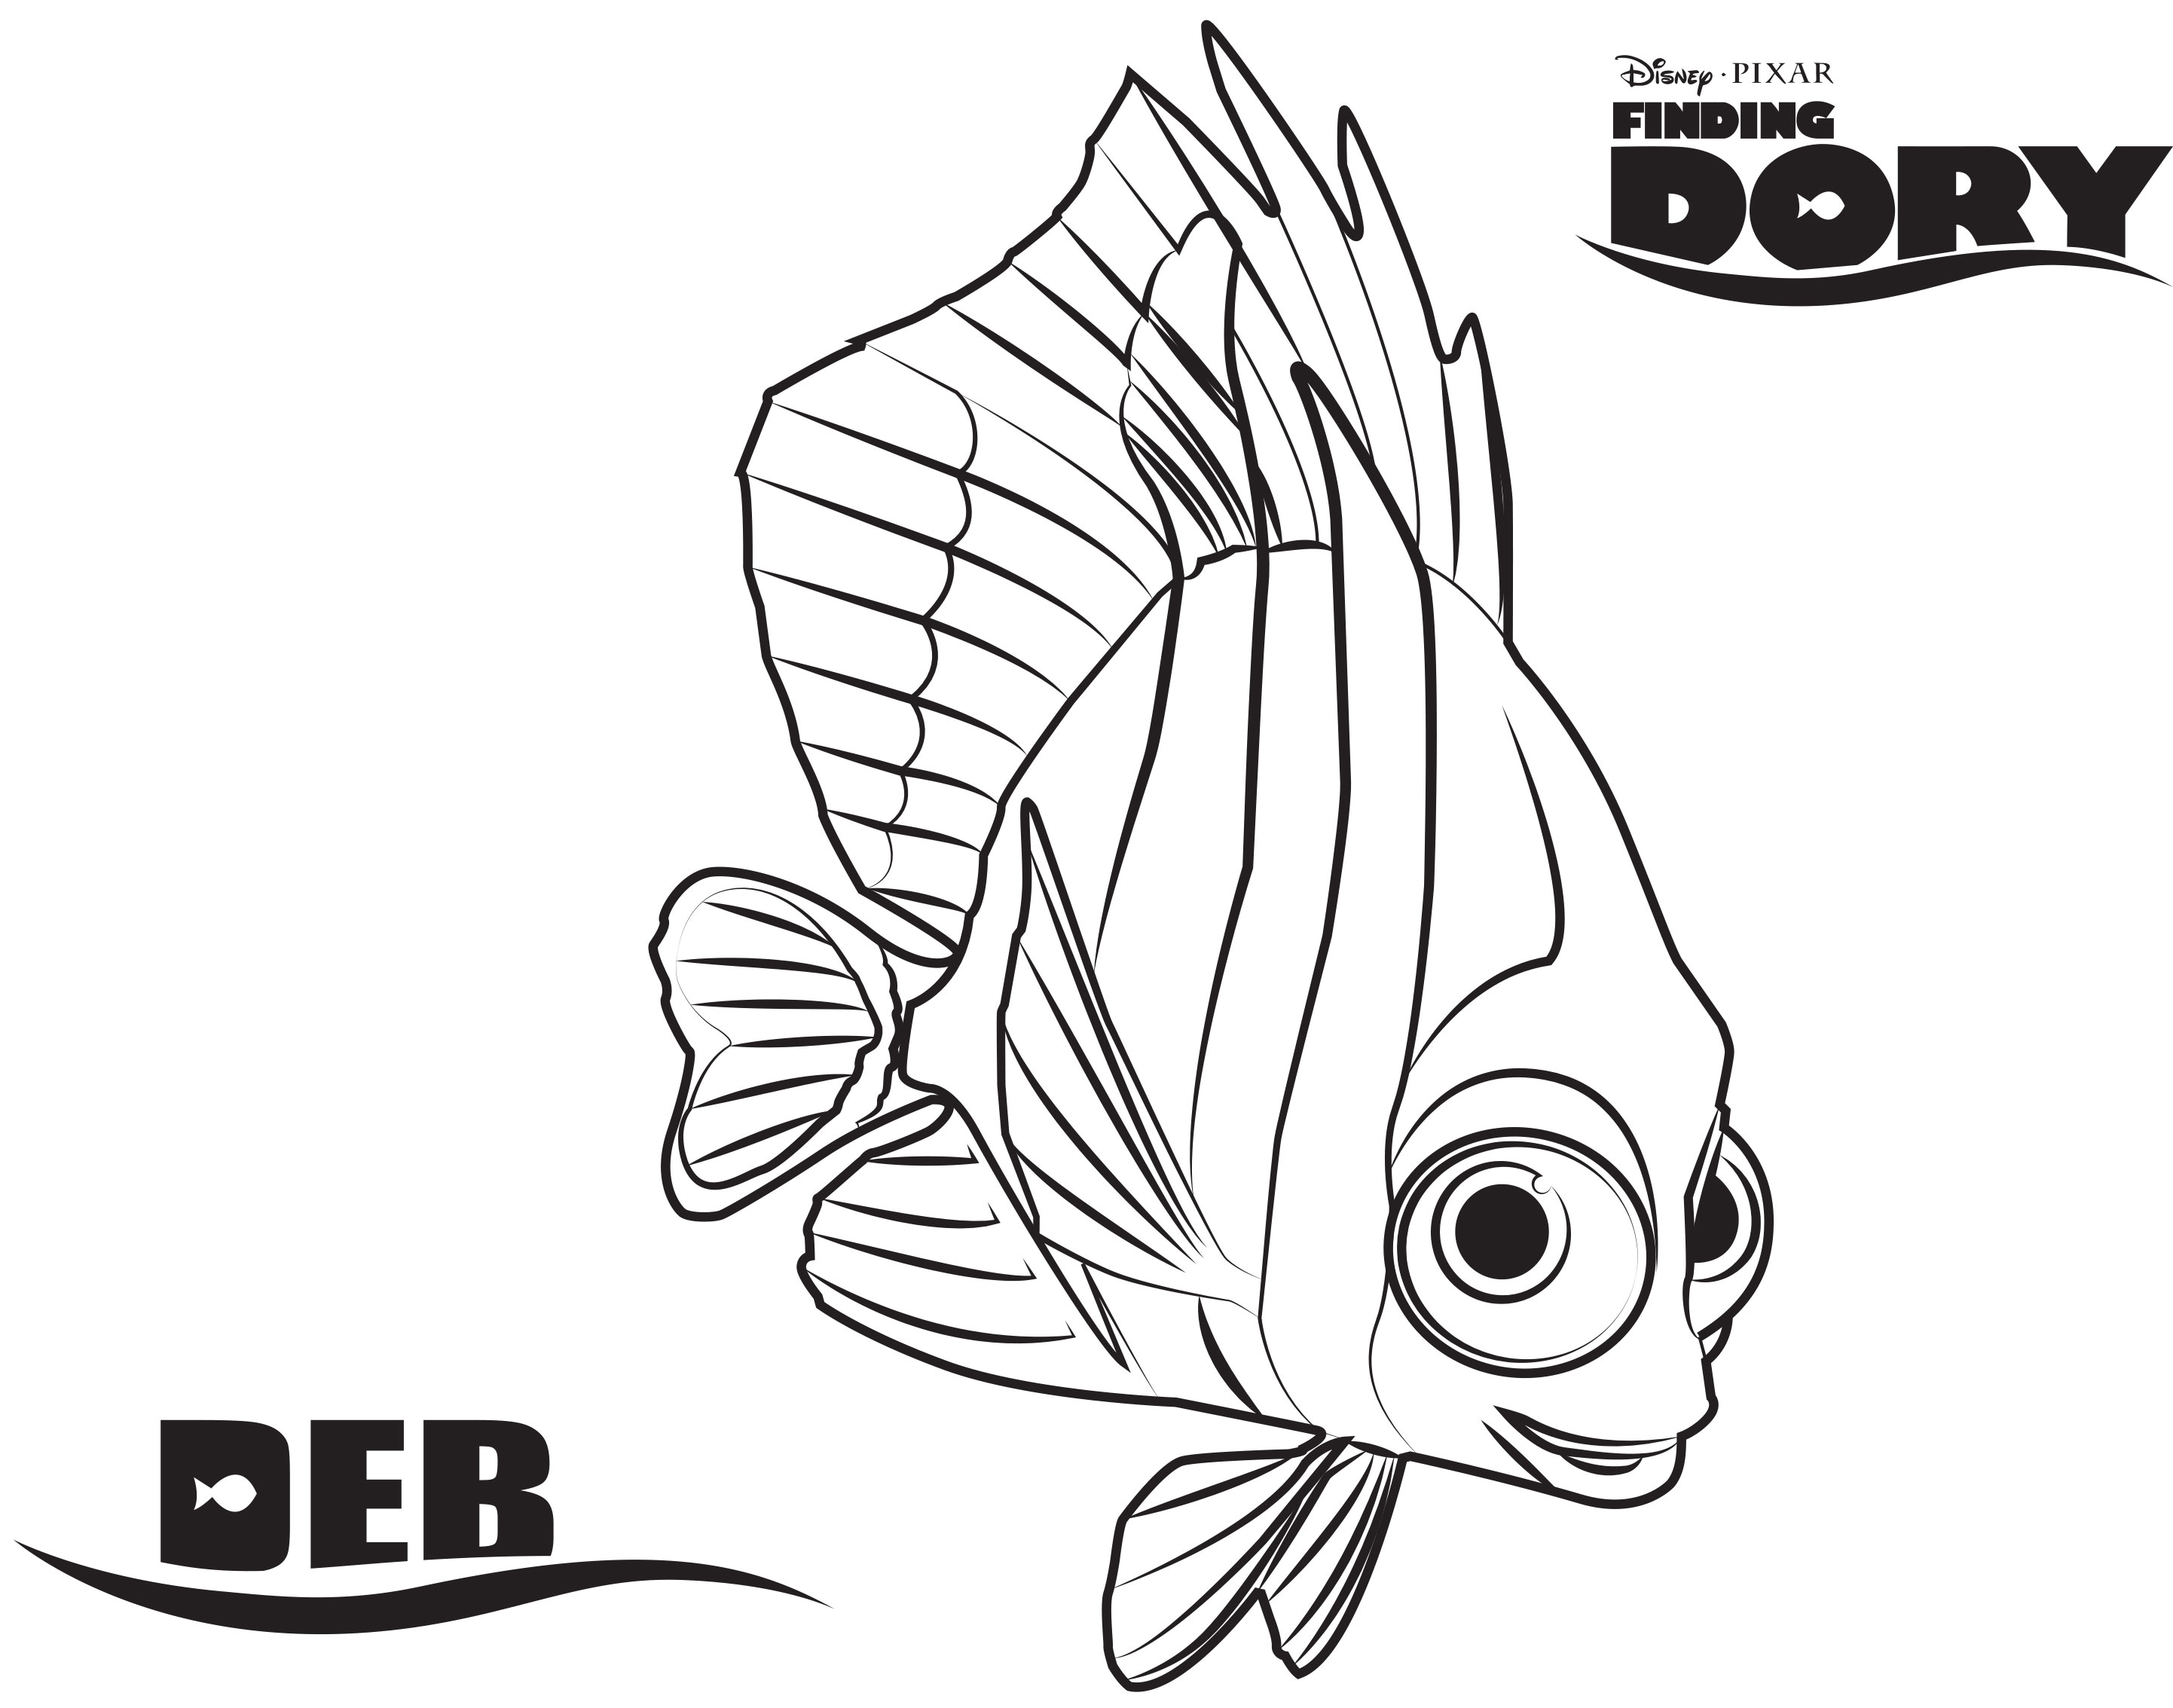 Printable coloring pages dory - Deb Disney S Finding Dory Coloring Pages Sheet Free Disney Printable